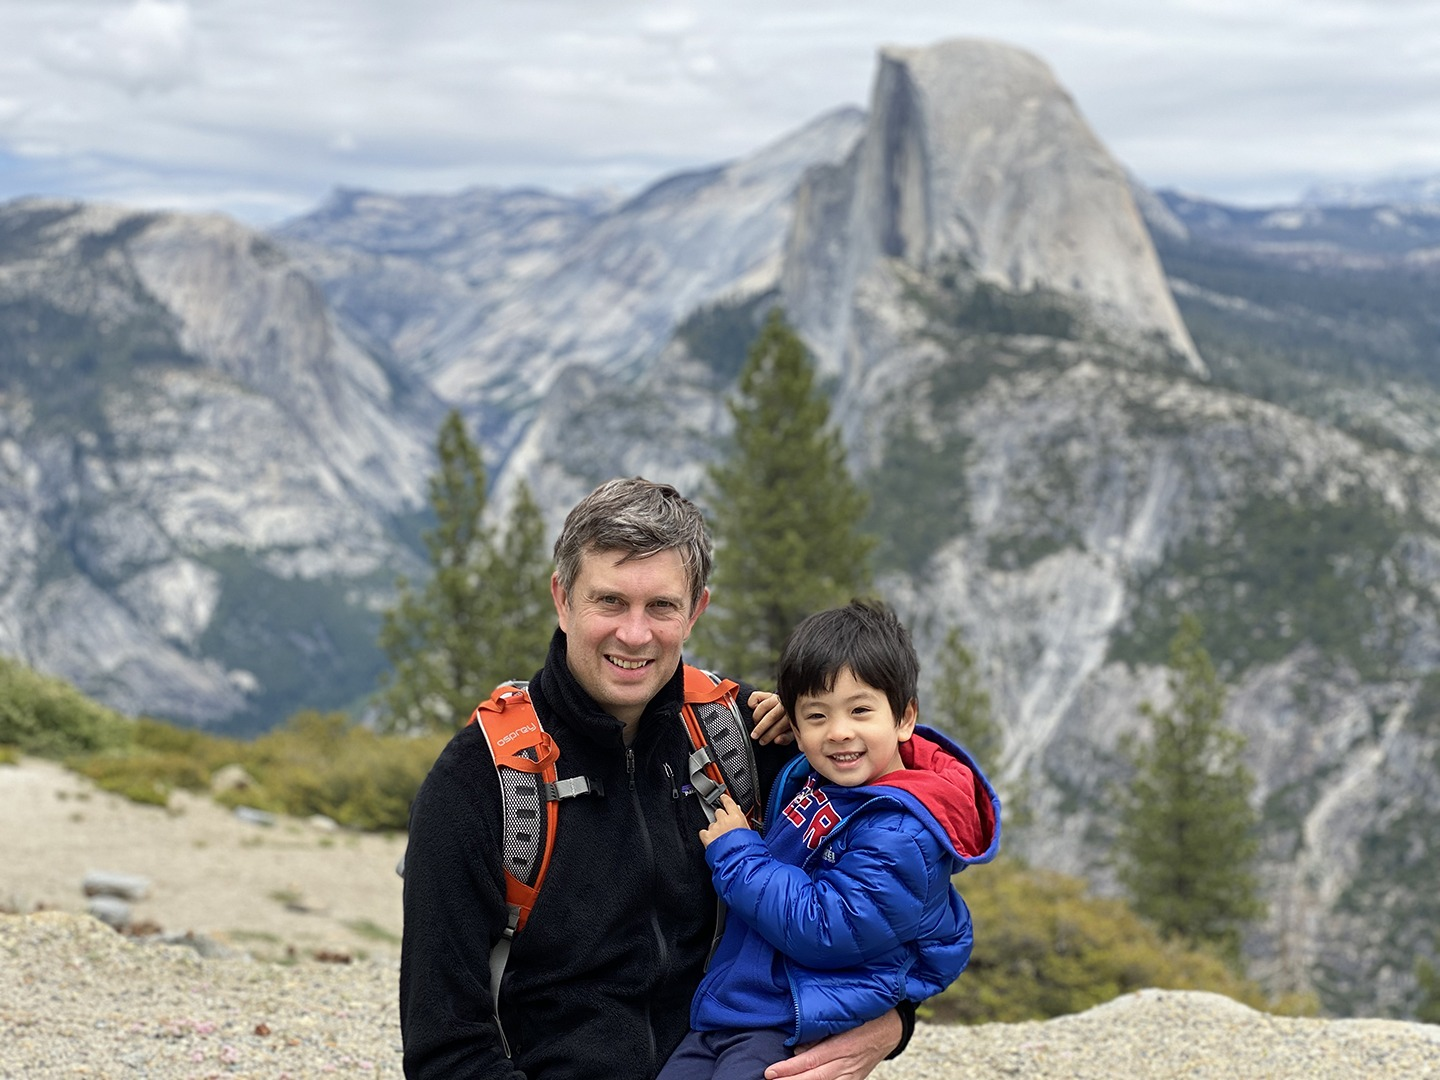 Mike Ashton holds his 4-year-old son, Owen, at Glacier Point. Both smile at the camera, and Half Dome is visible in the background.